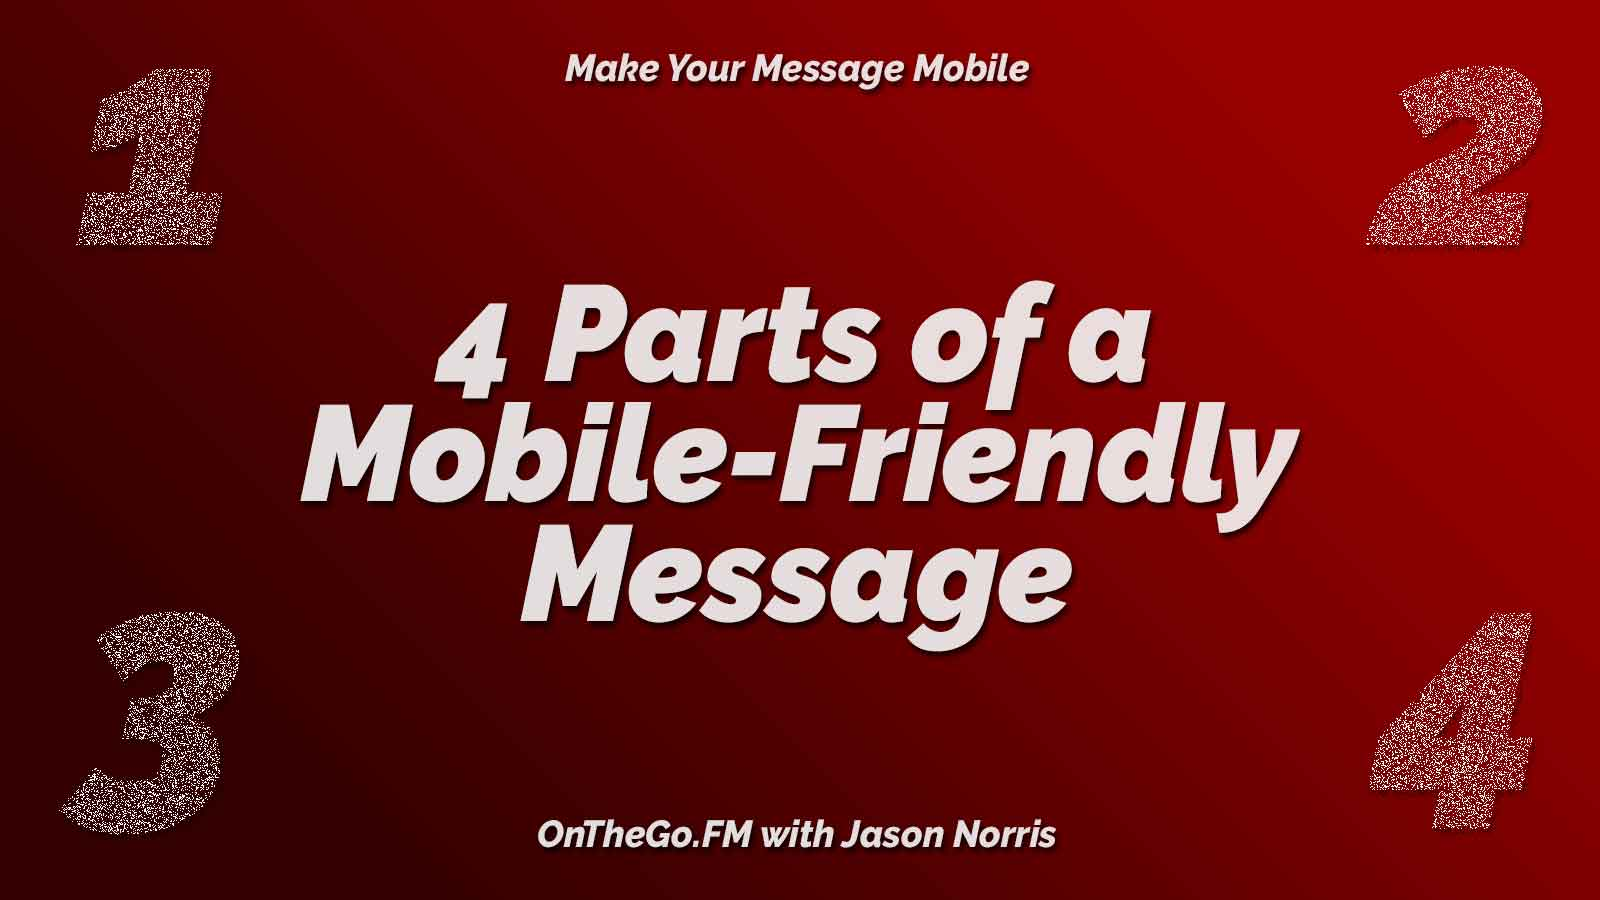 4 parts of a mobile-friendly message. OnTheGo.FM